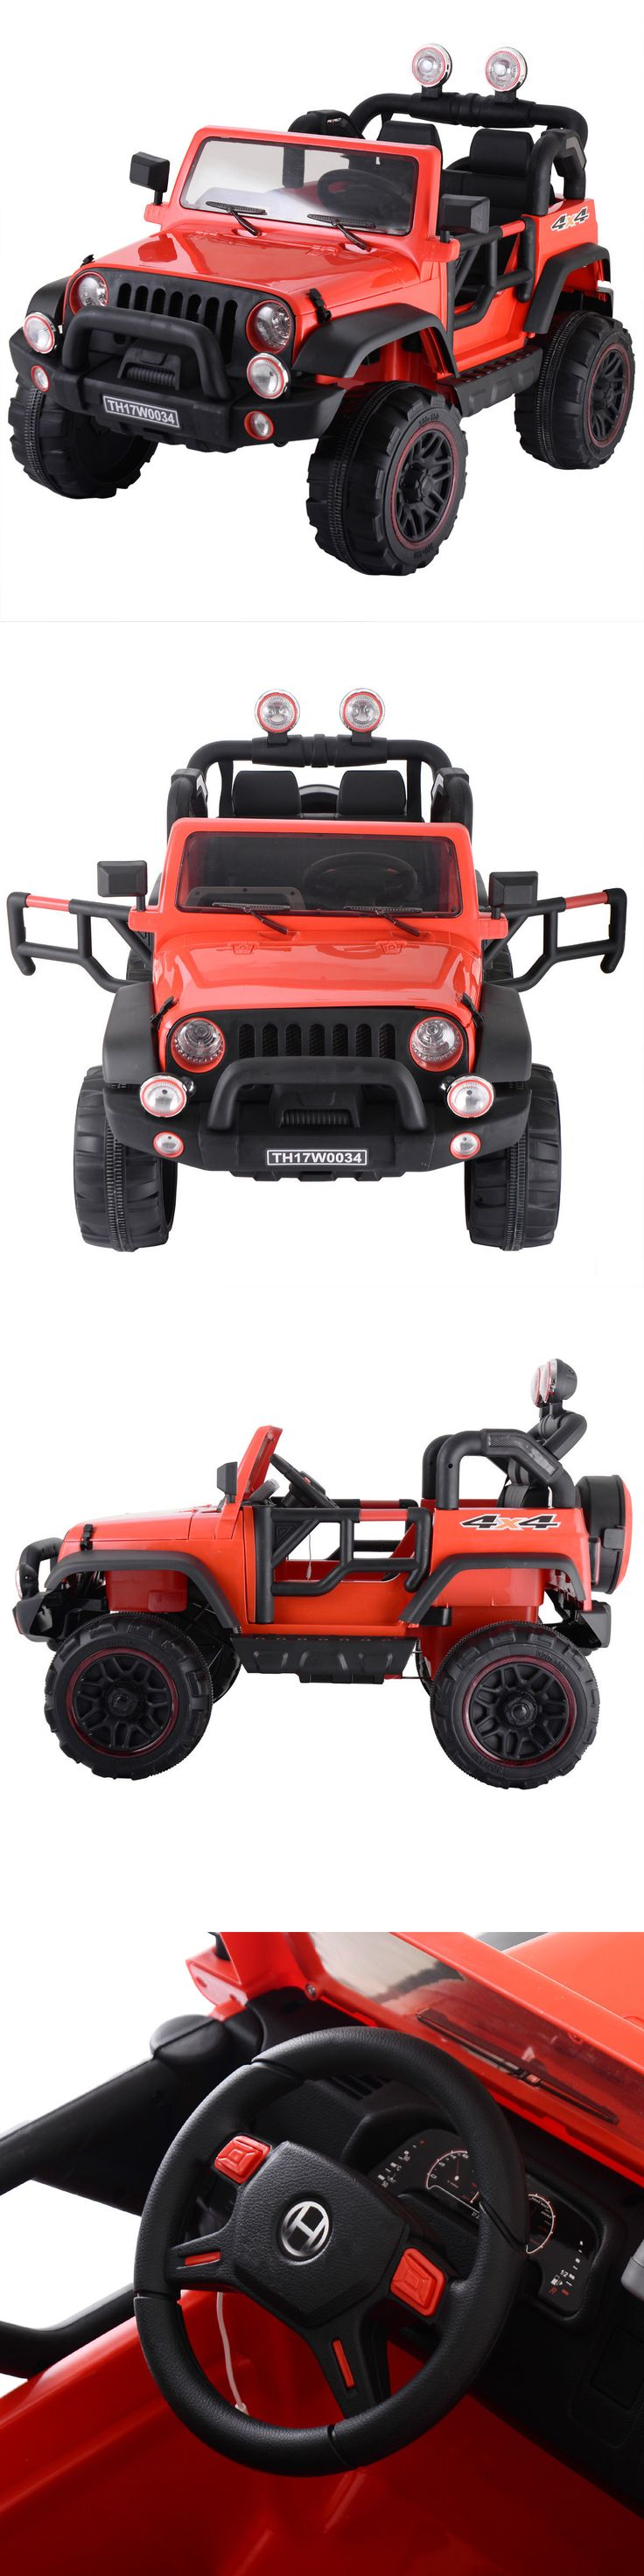 Ride On Toys and Accessories 145944: Jeep Car 12V Mp3 Kids Ride On Truck Rc Remote Control W Led Lights Music Red -> BUY IT NOW ONLY: $249.99 on eBay!